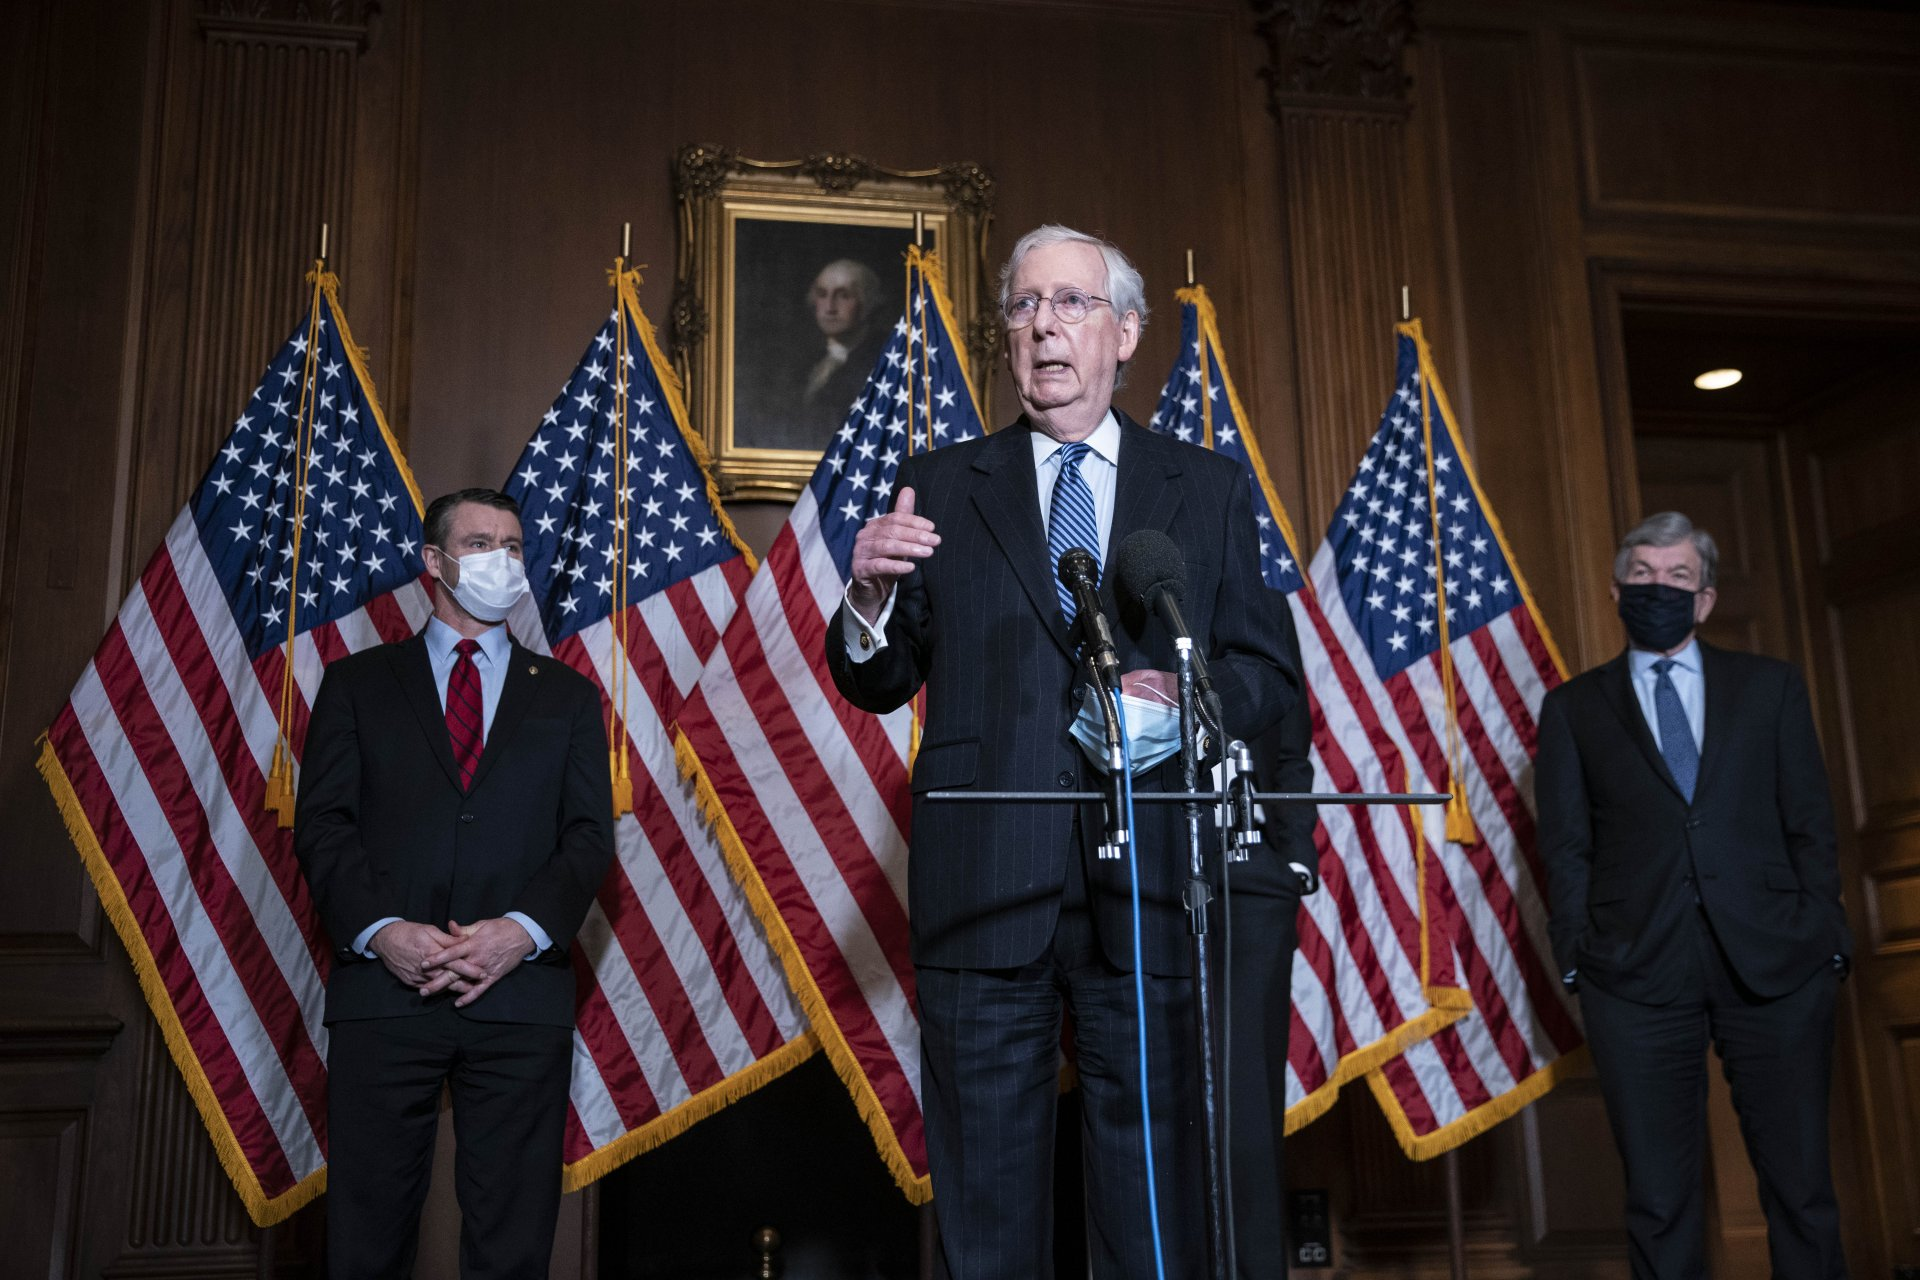 Mandatory Credit: Photo by Shutterstock (11398620b)United States Senate Majority Leader Mitch McConnell (Republican of Kentucky), speaks during a news conference following a weekly meeting with the Senate Republican caucus at the U.